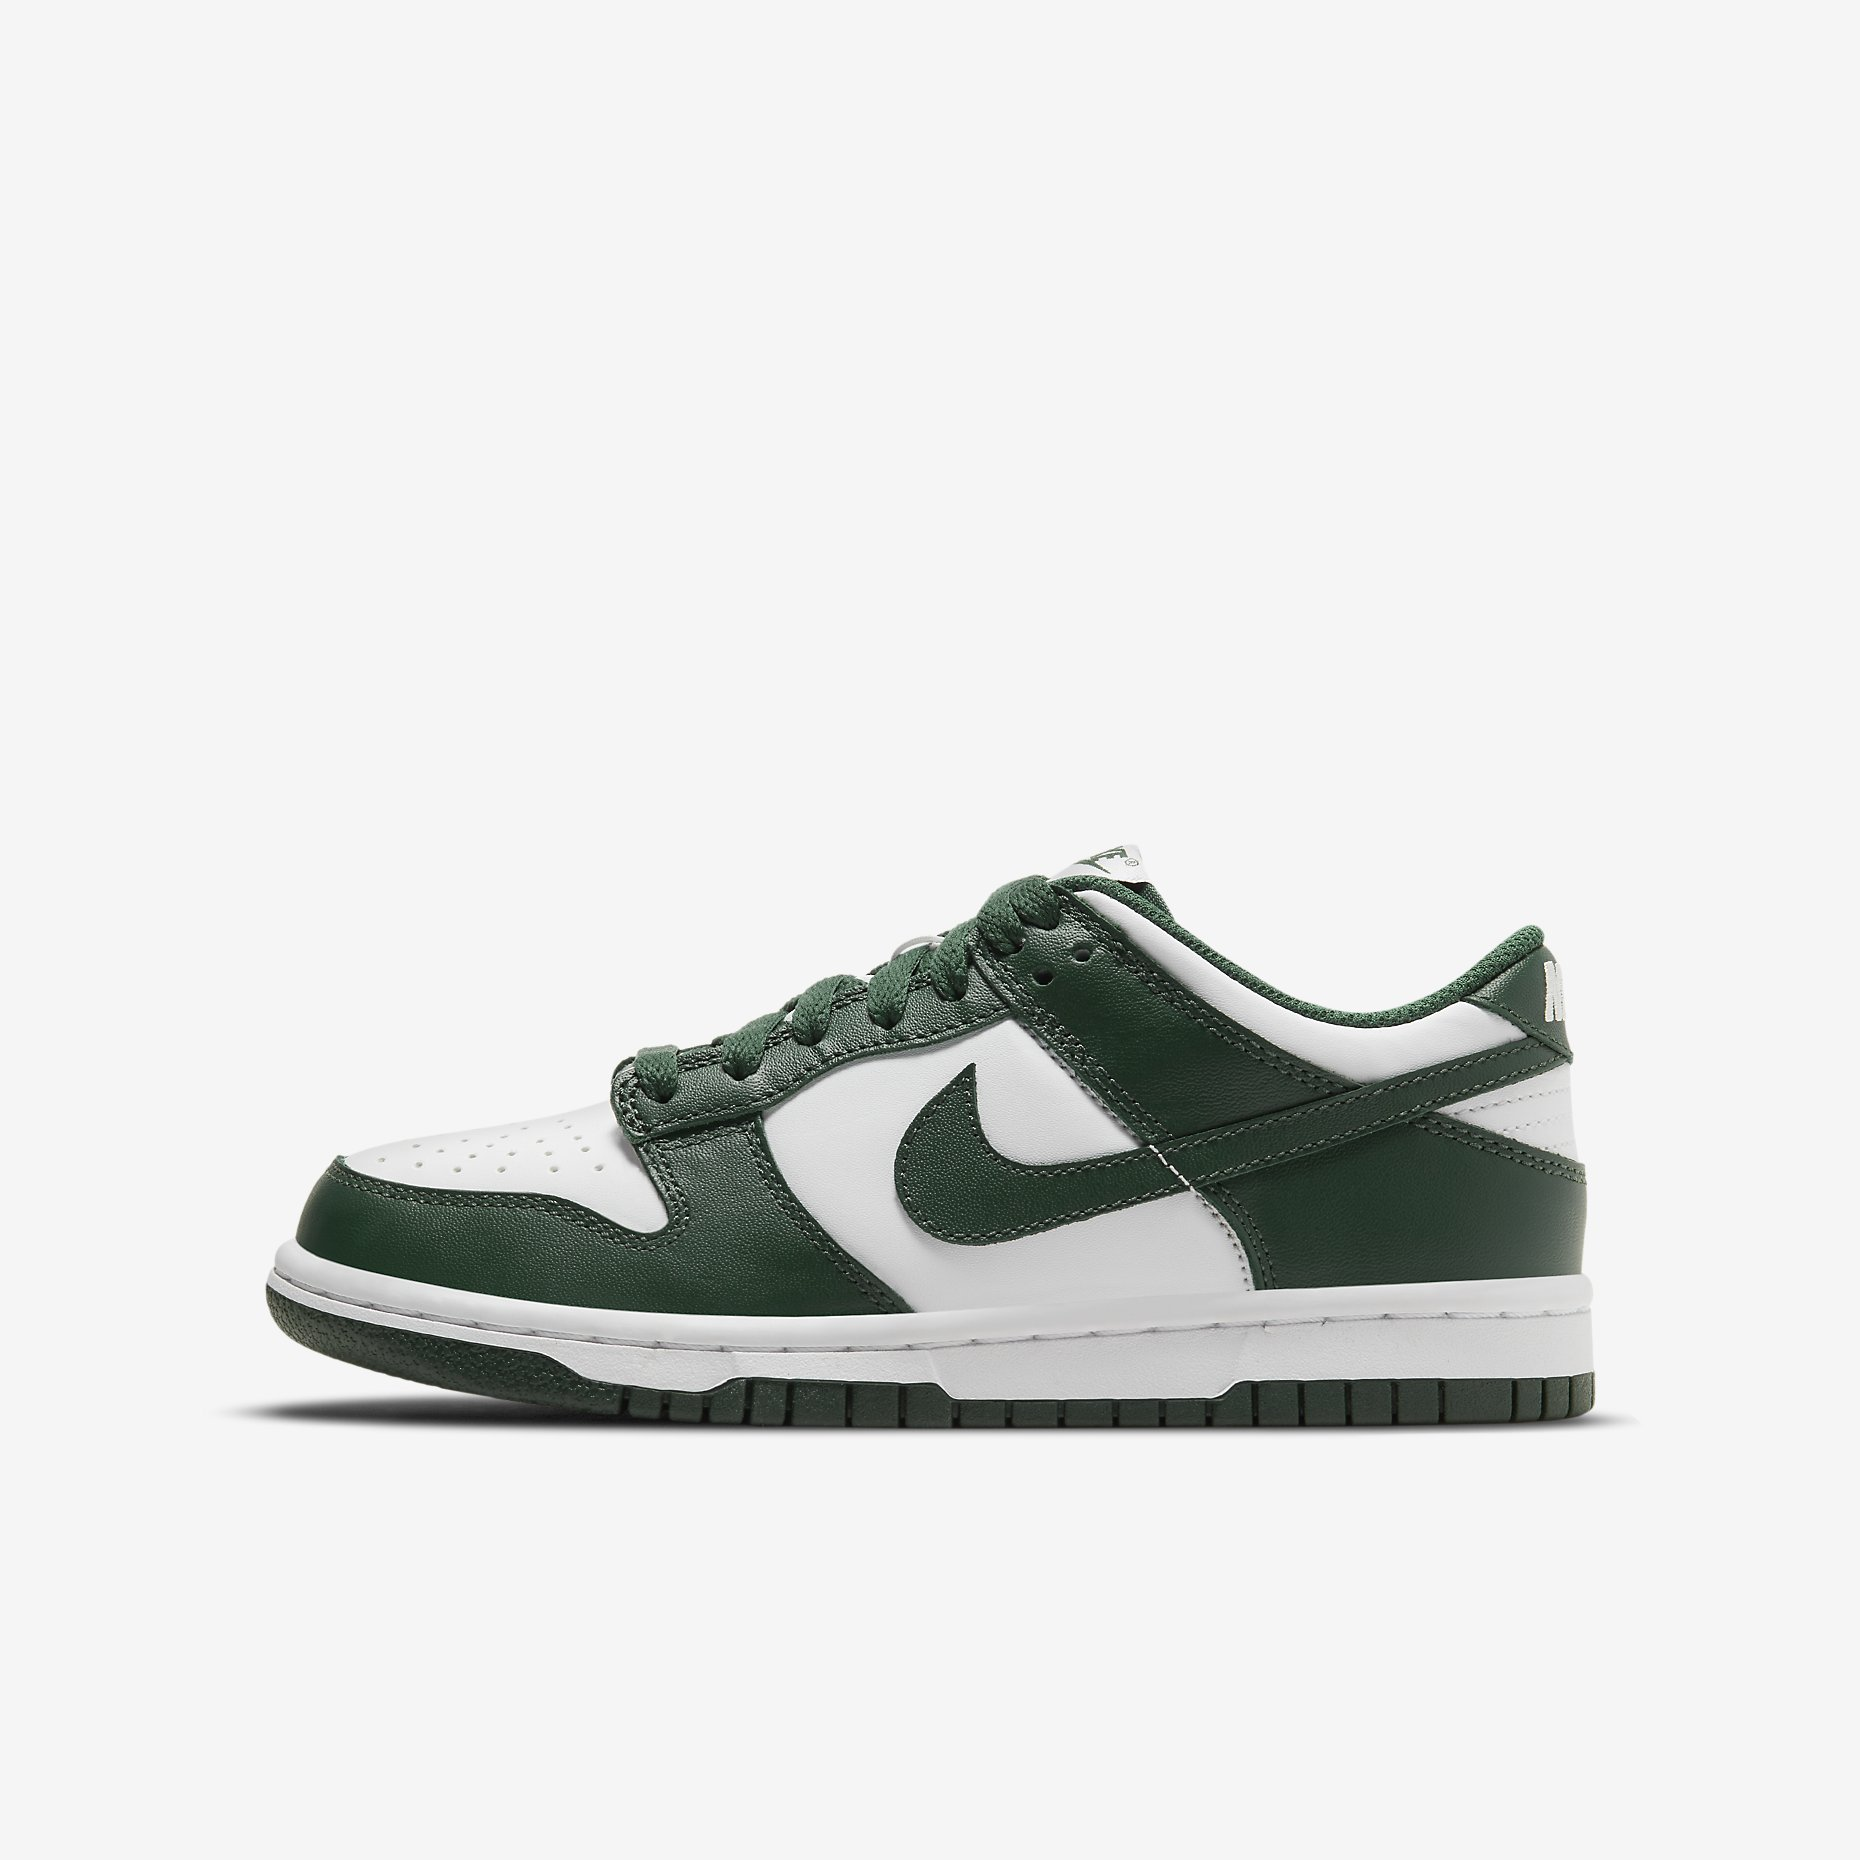 Nike Dunk Low GS 'White/Team Green'}